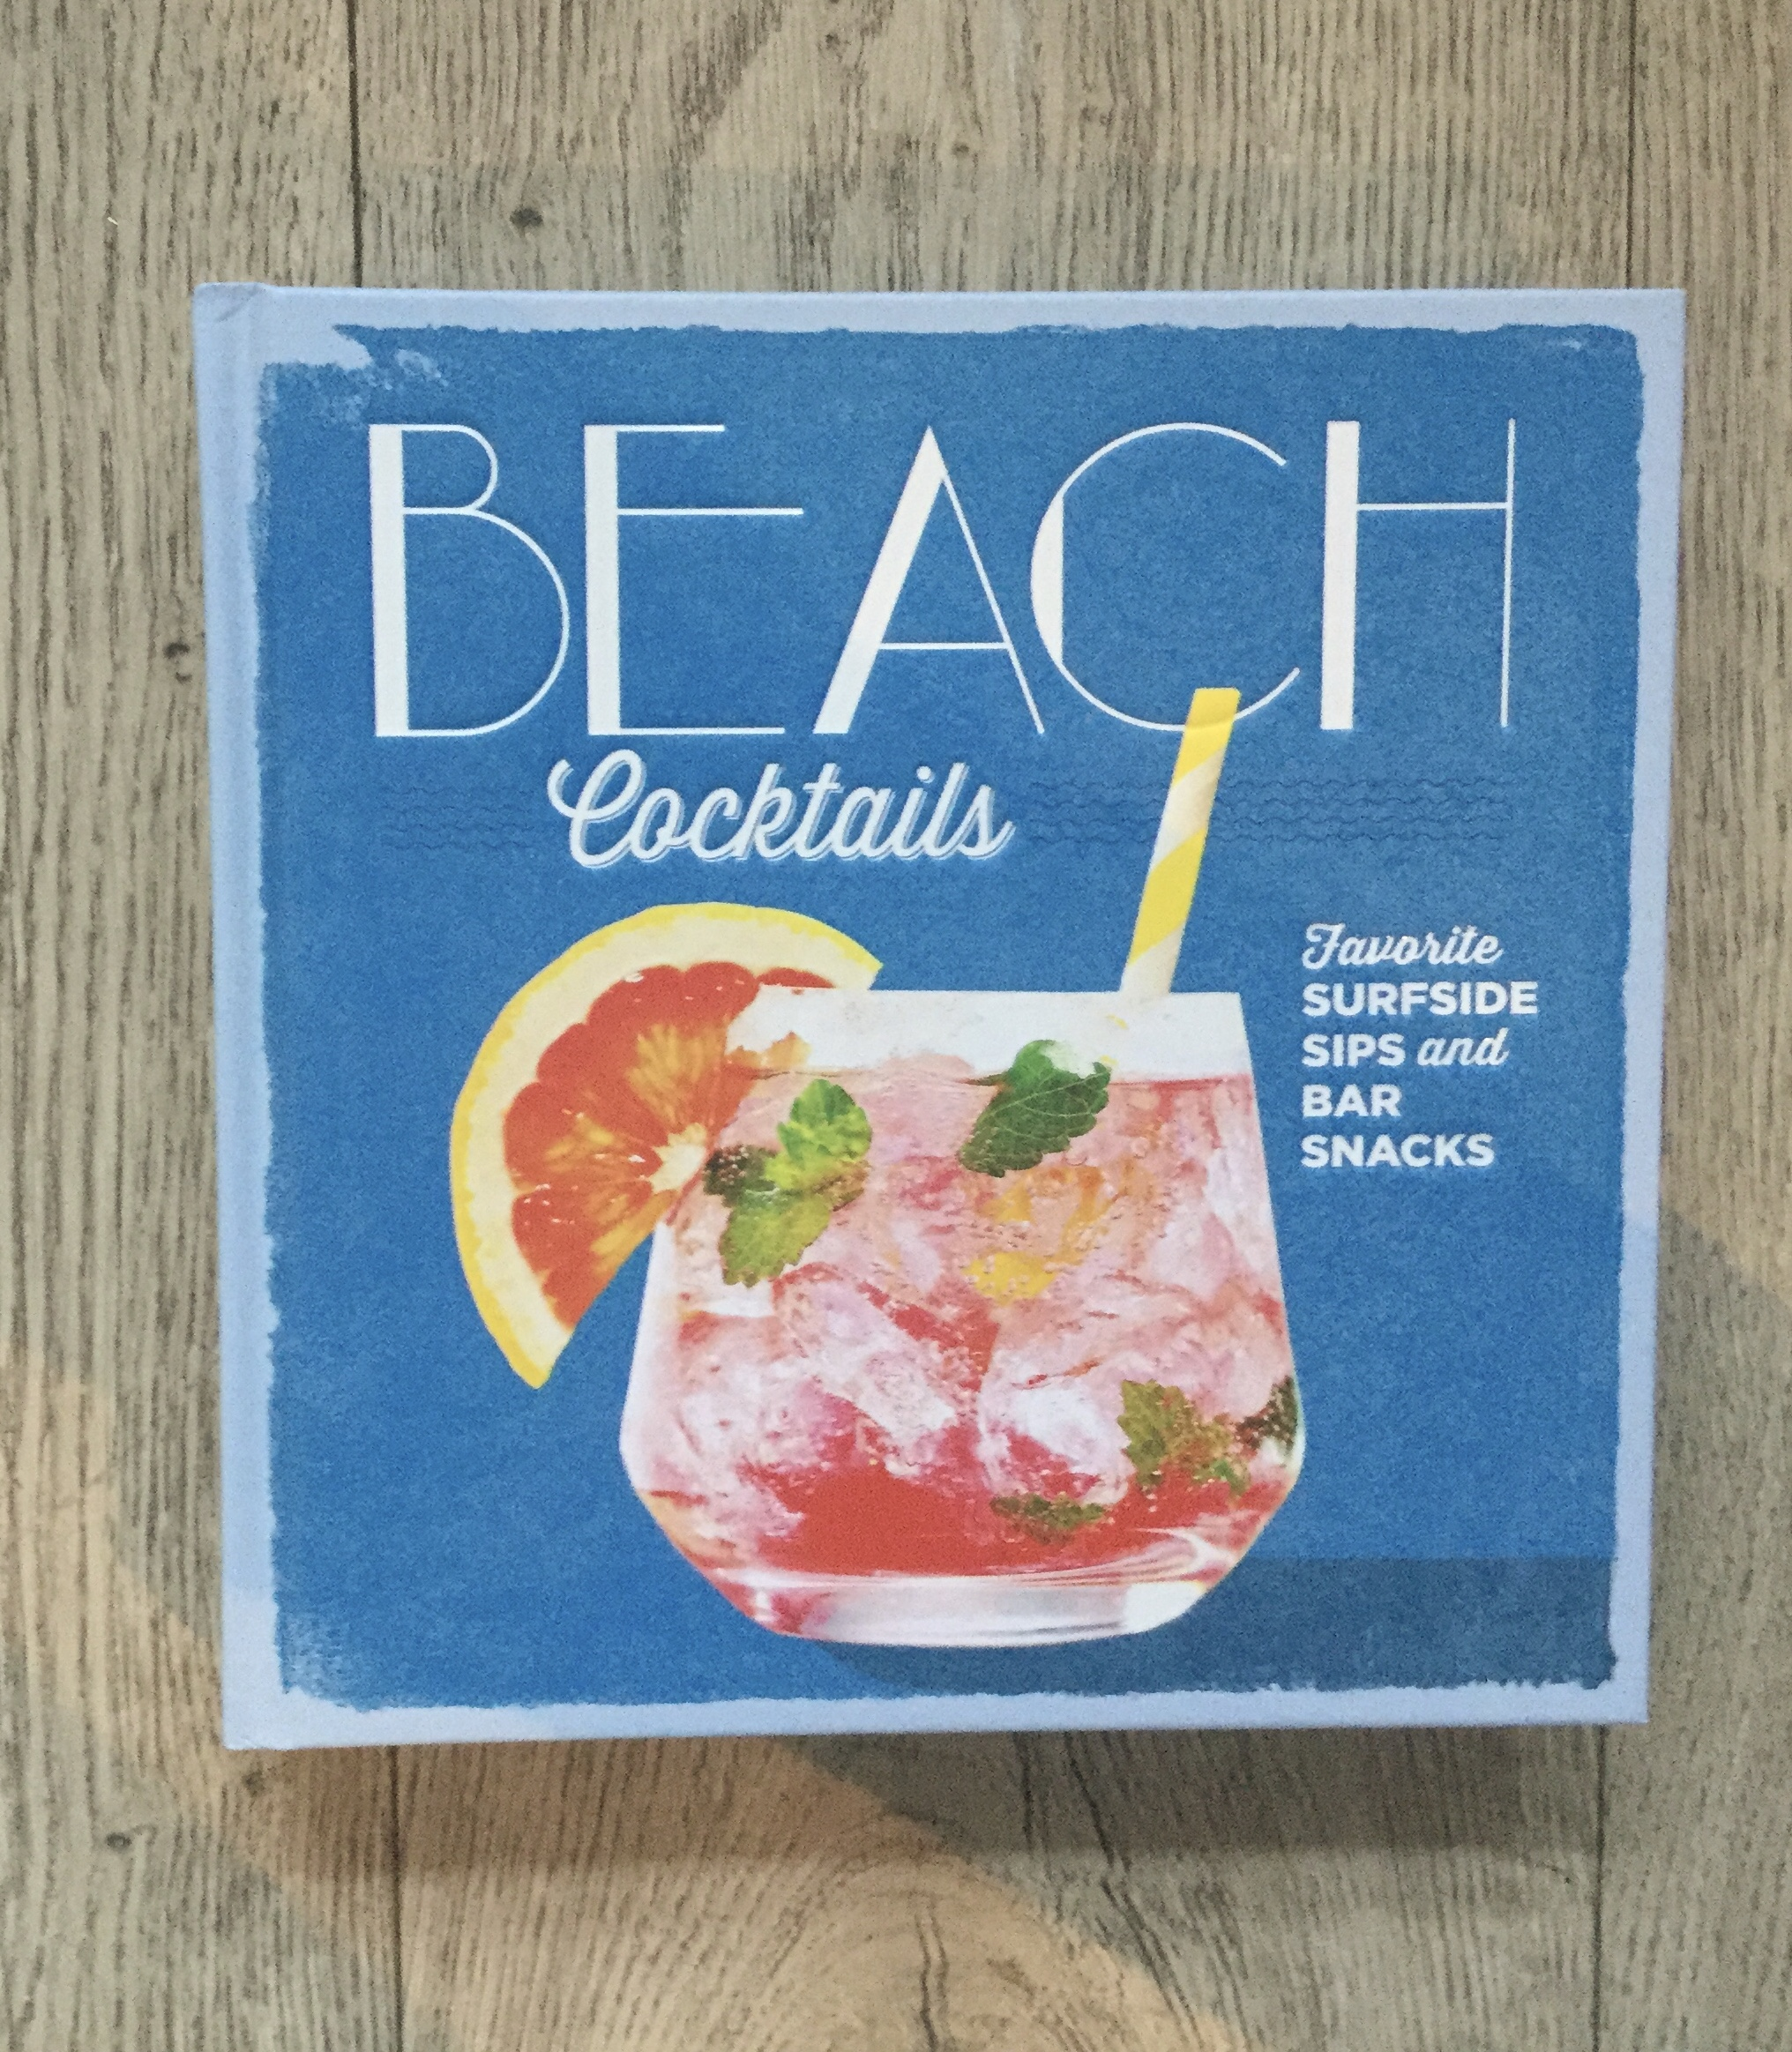 The Beach Cocktails book